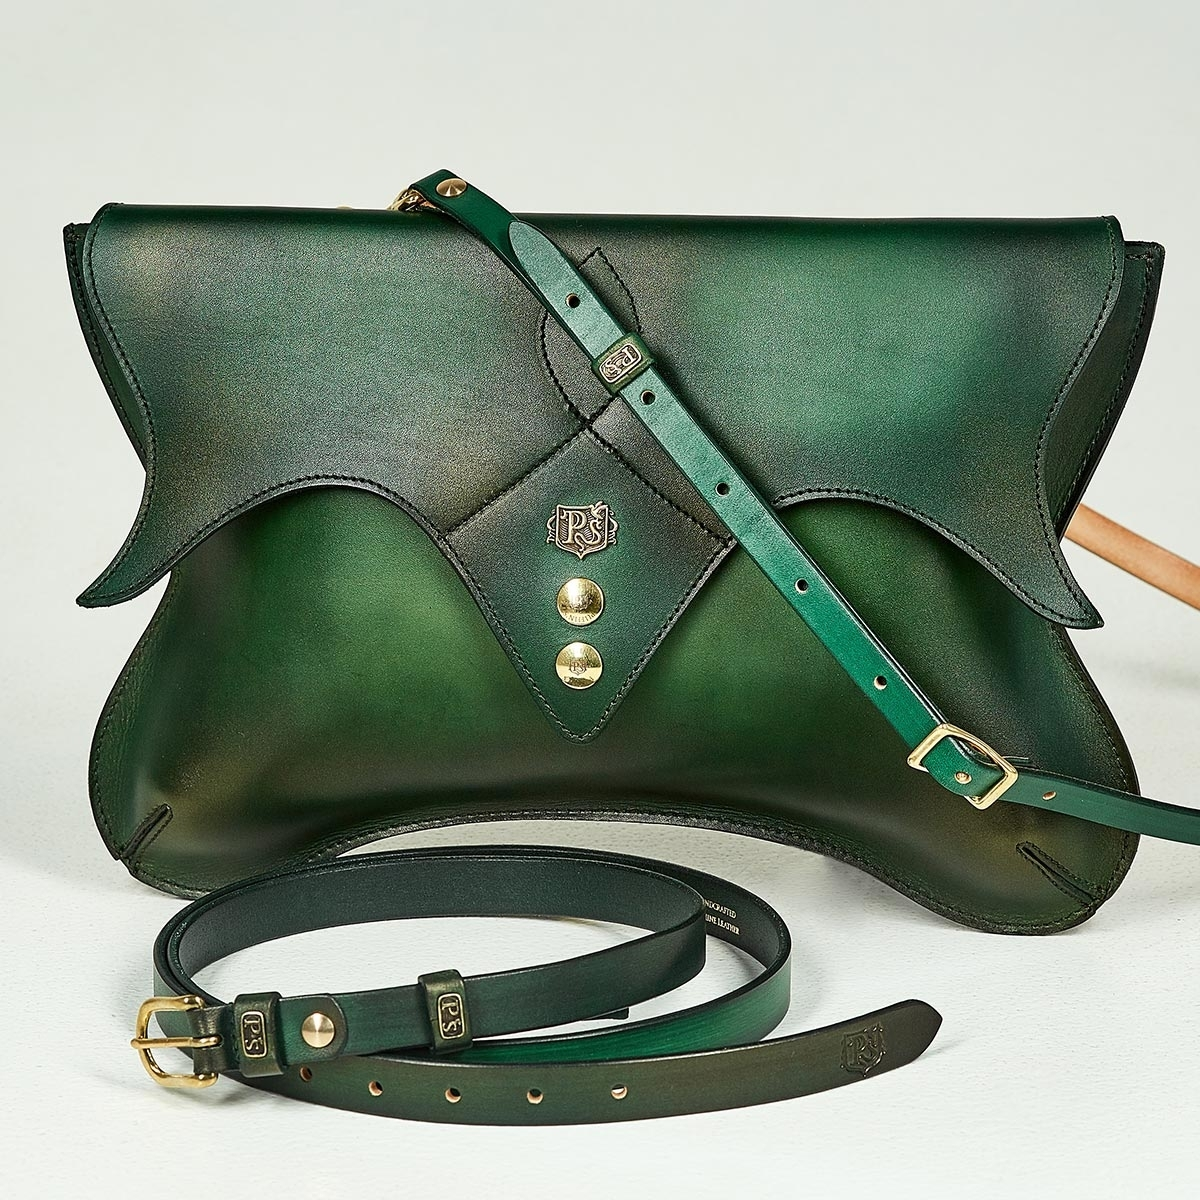 Ladies clutch LOTUS grassy green